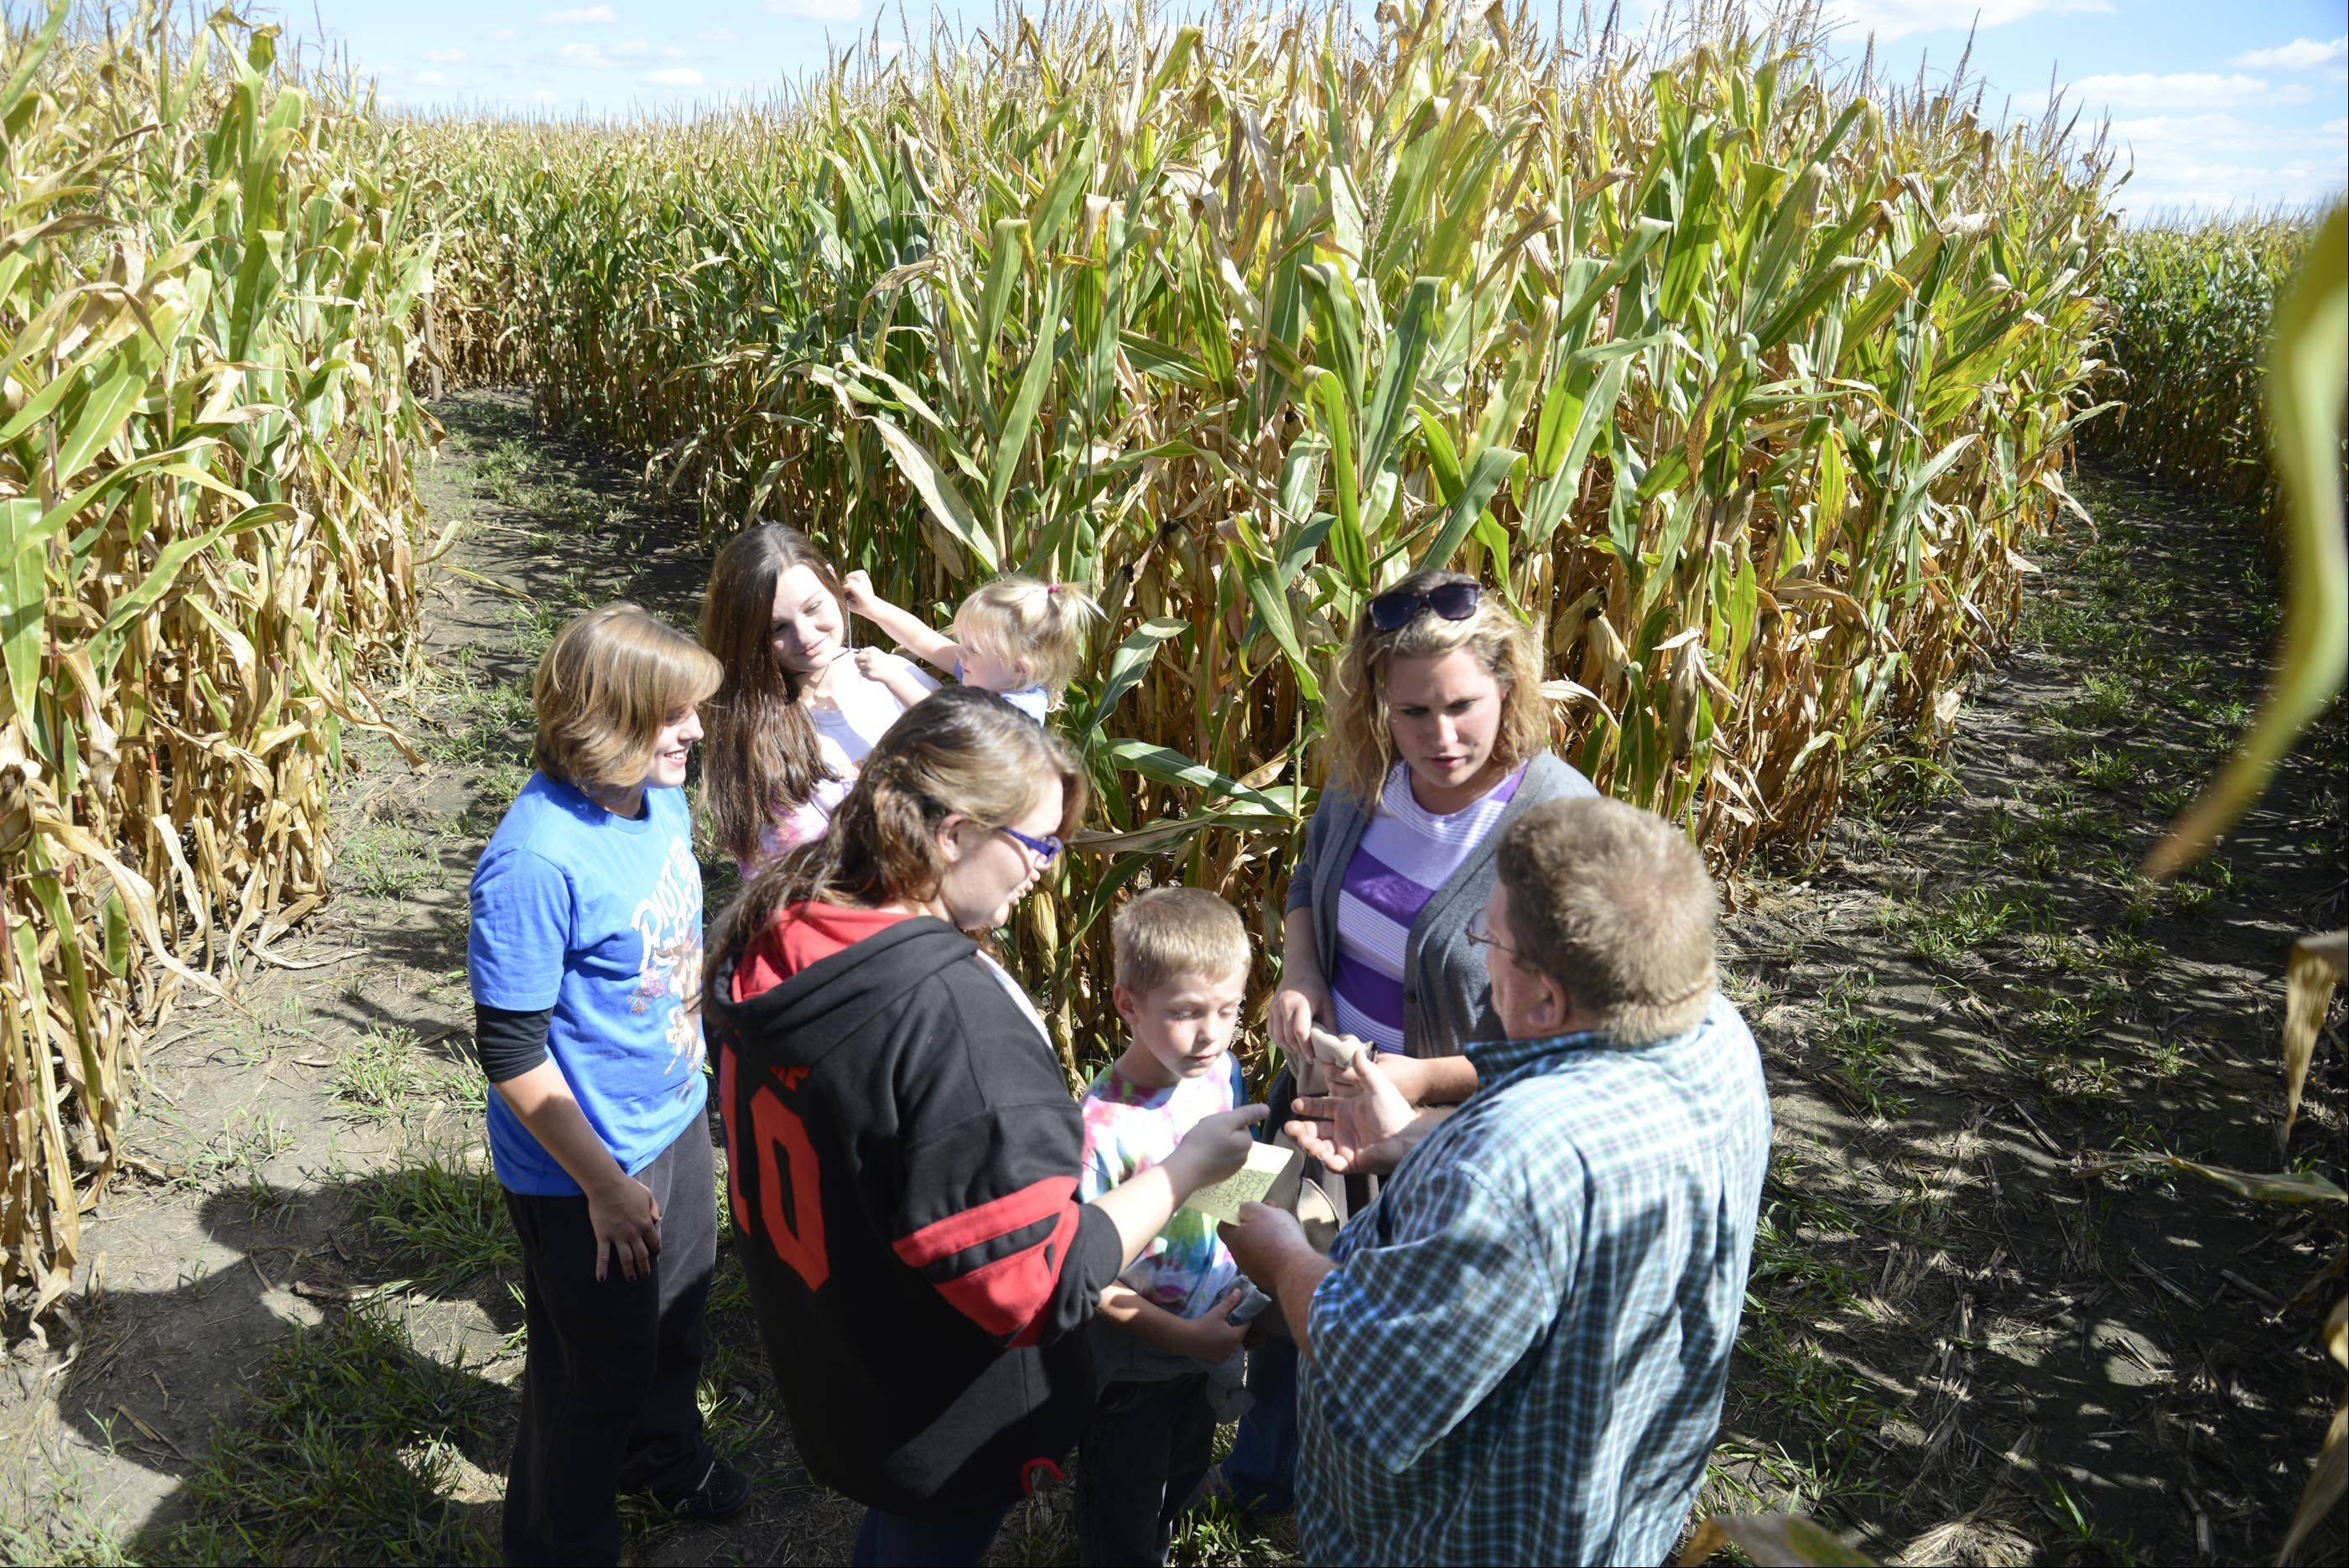 Owner Ben Norton gives directions to Jessica, Brody, Kelsey and Lexi Hanson, of St. Charles, and Hayle and Katy Pillsburg, of Maple Park, at the Norton's Produce & Garden Center corn maze in St. Charles.